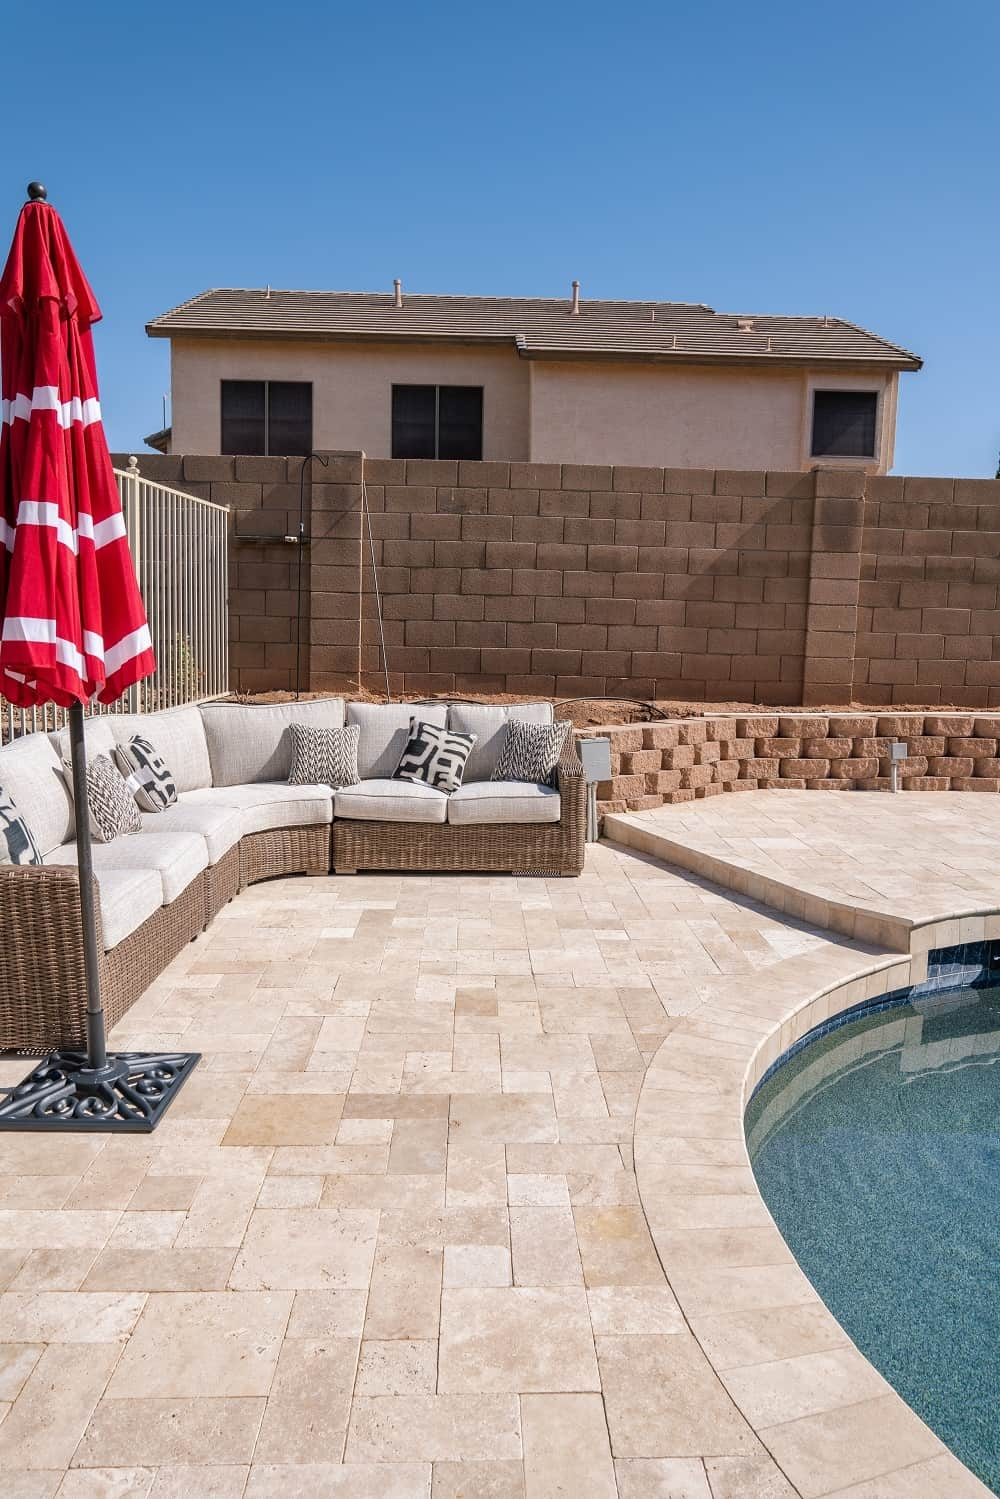 Pool Side Paving work done by Sledge Concrete Coating